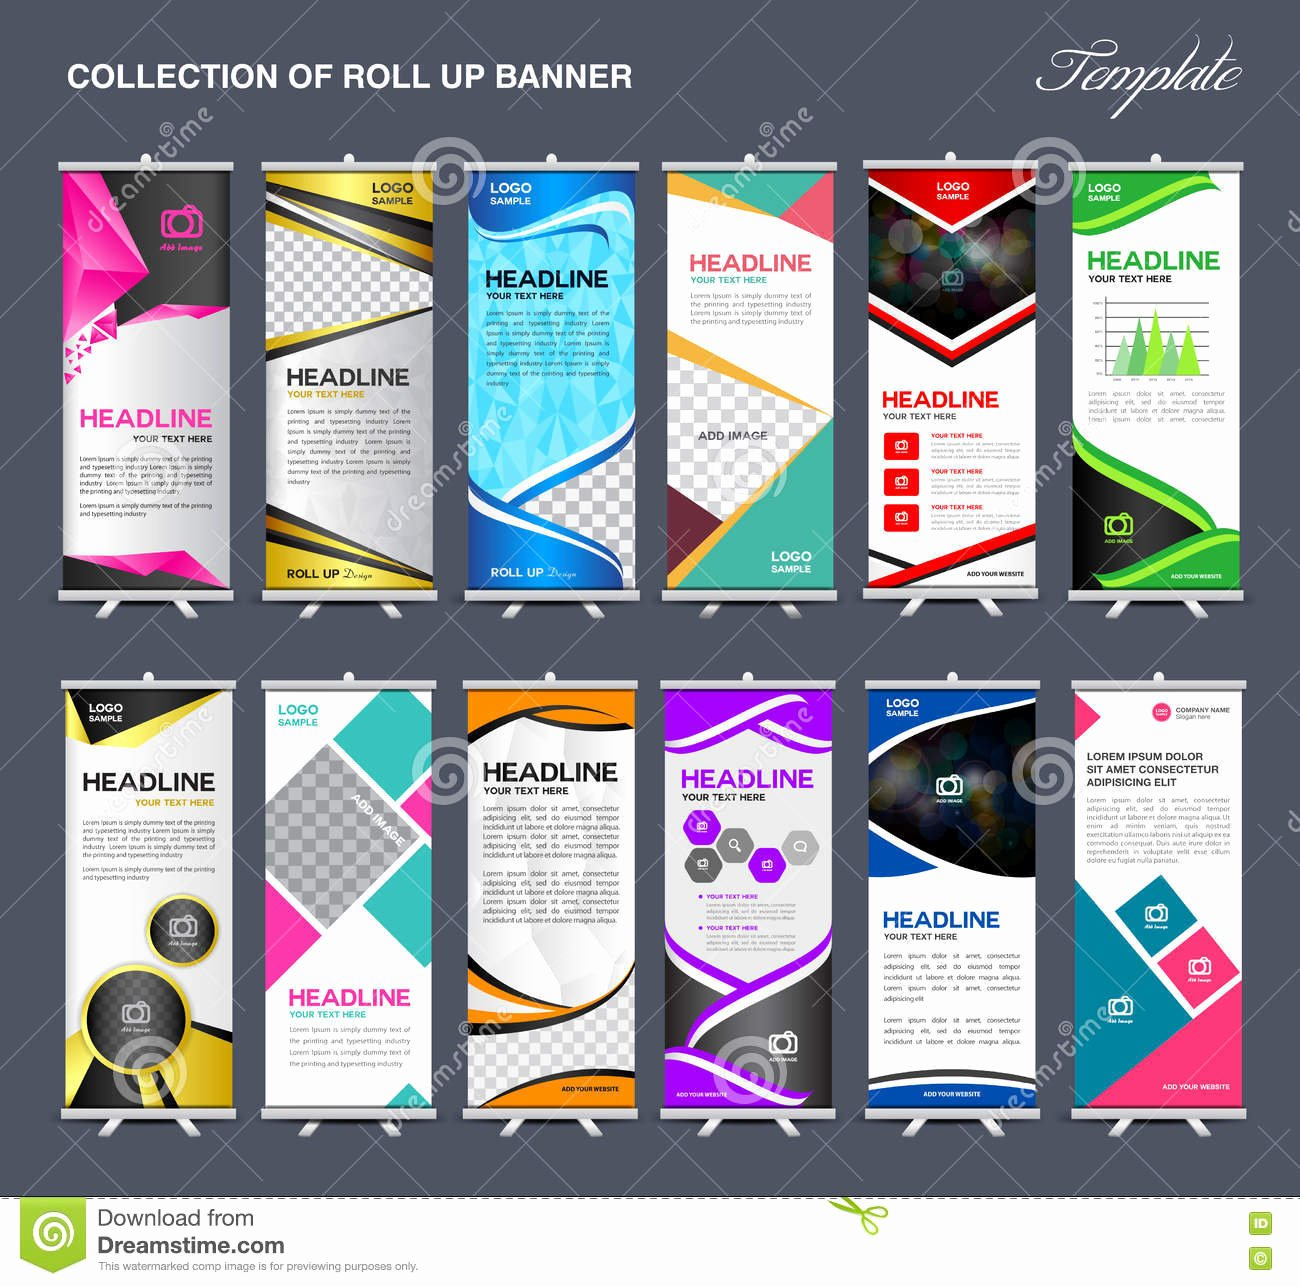 Roll Up Banners Template Lovely Roll Up Banner Template Collection Stand Template Vector